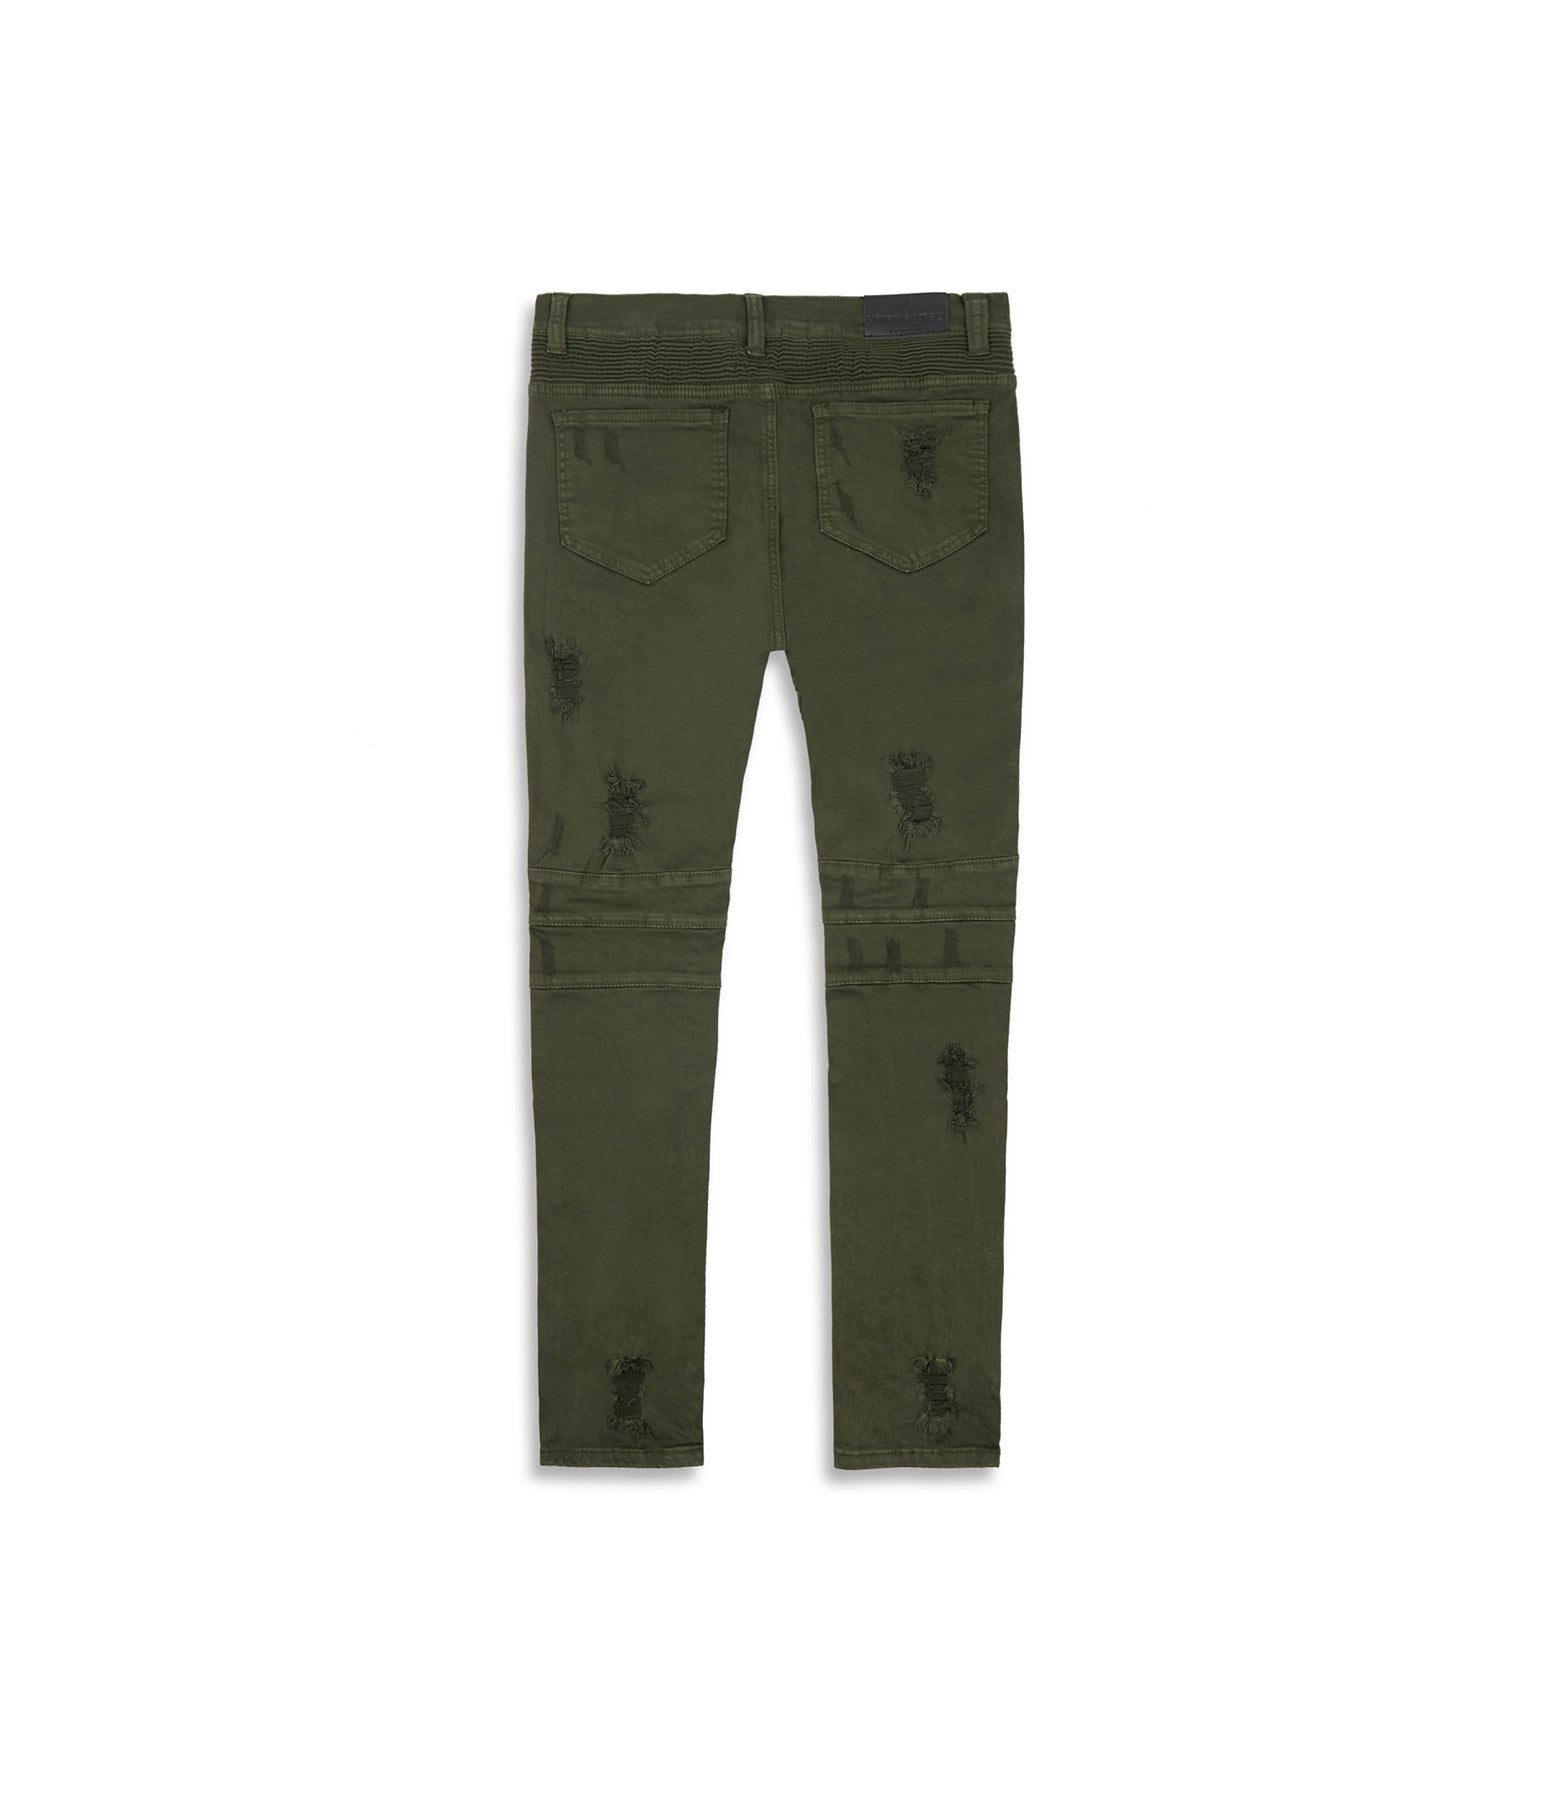 JN152 Distressed Biker Denim - Khaki - underated london - underatedco - 11